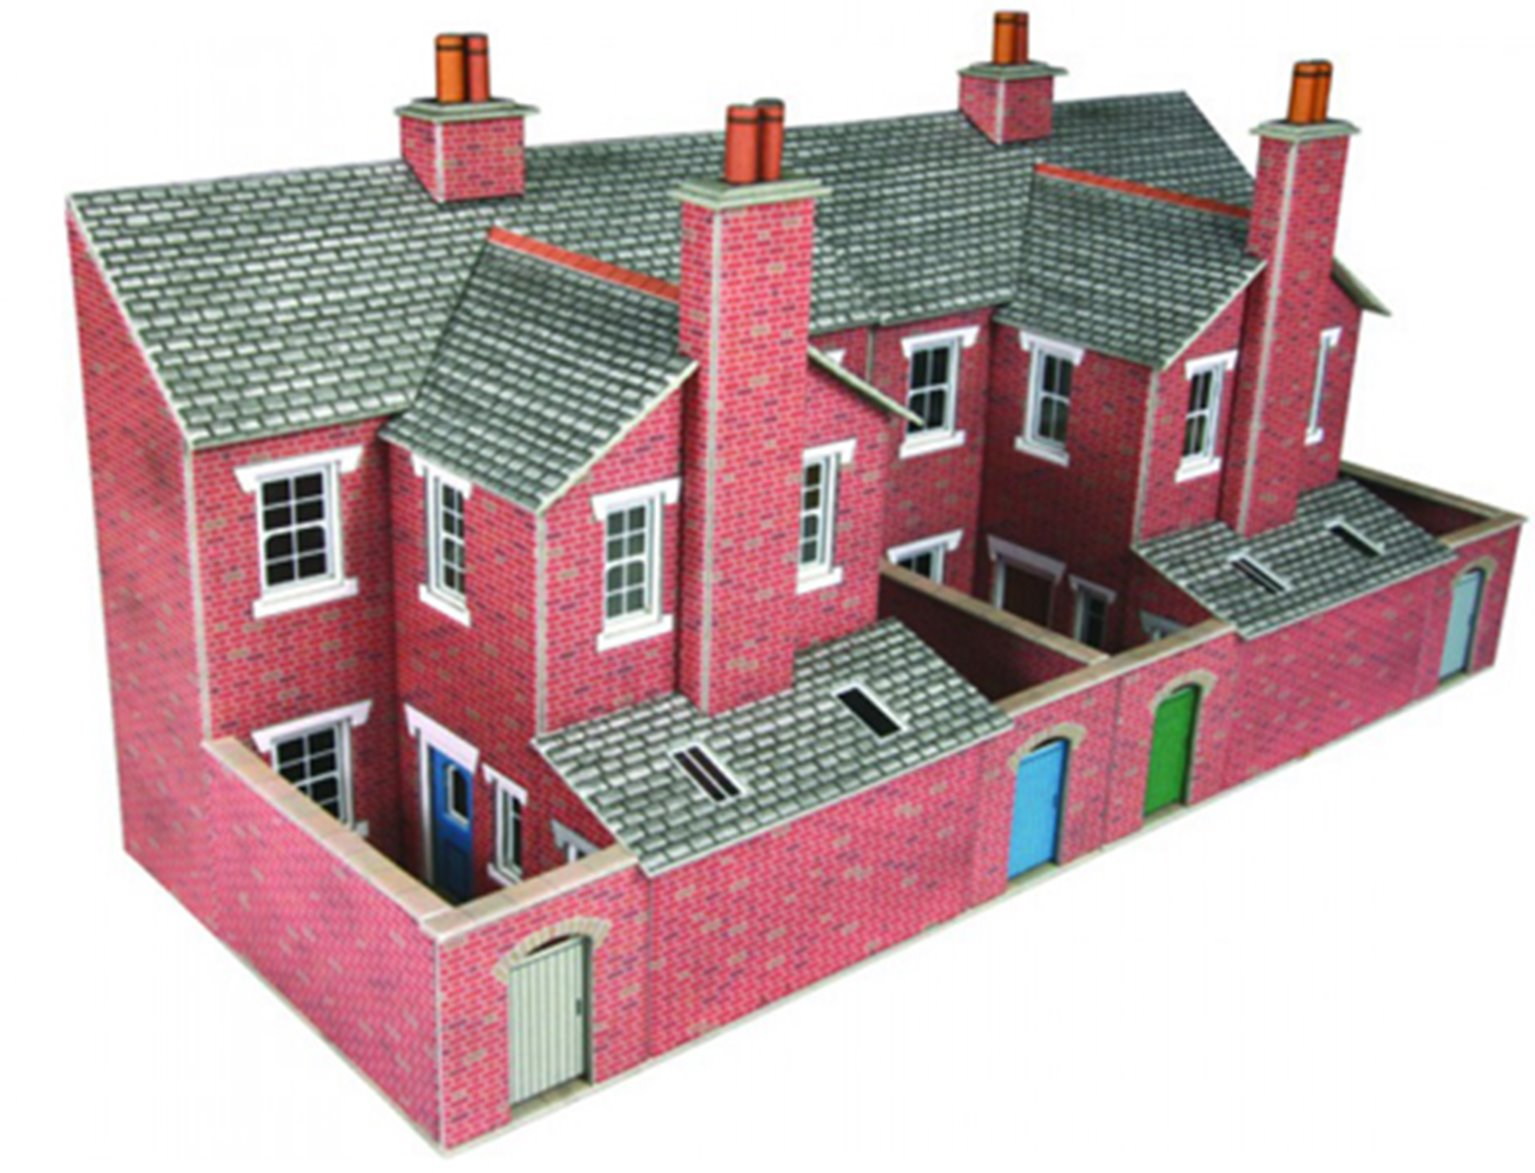 Low Relief Terraced House Backs - Red Brick